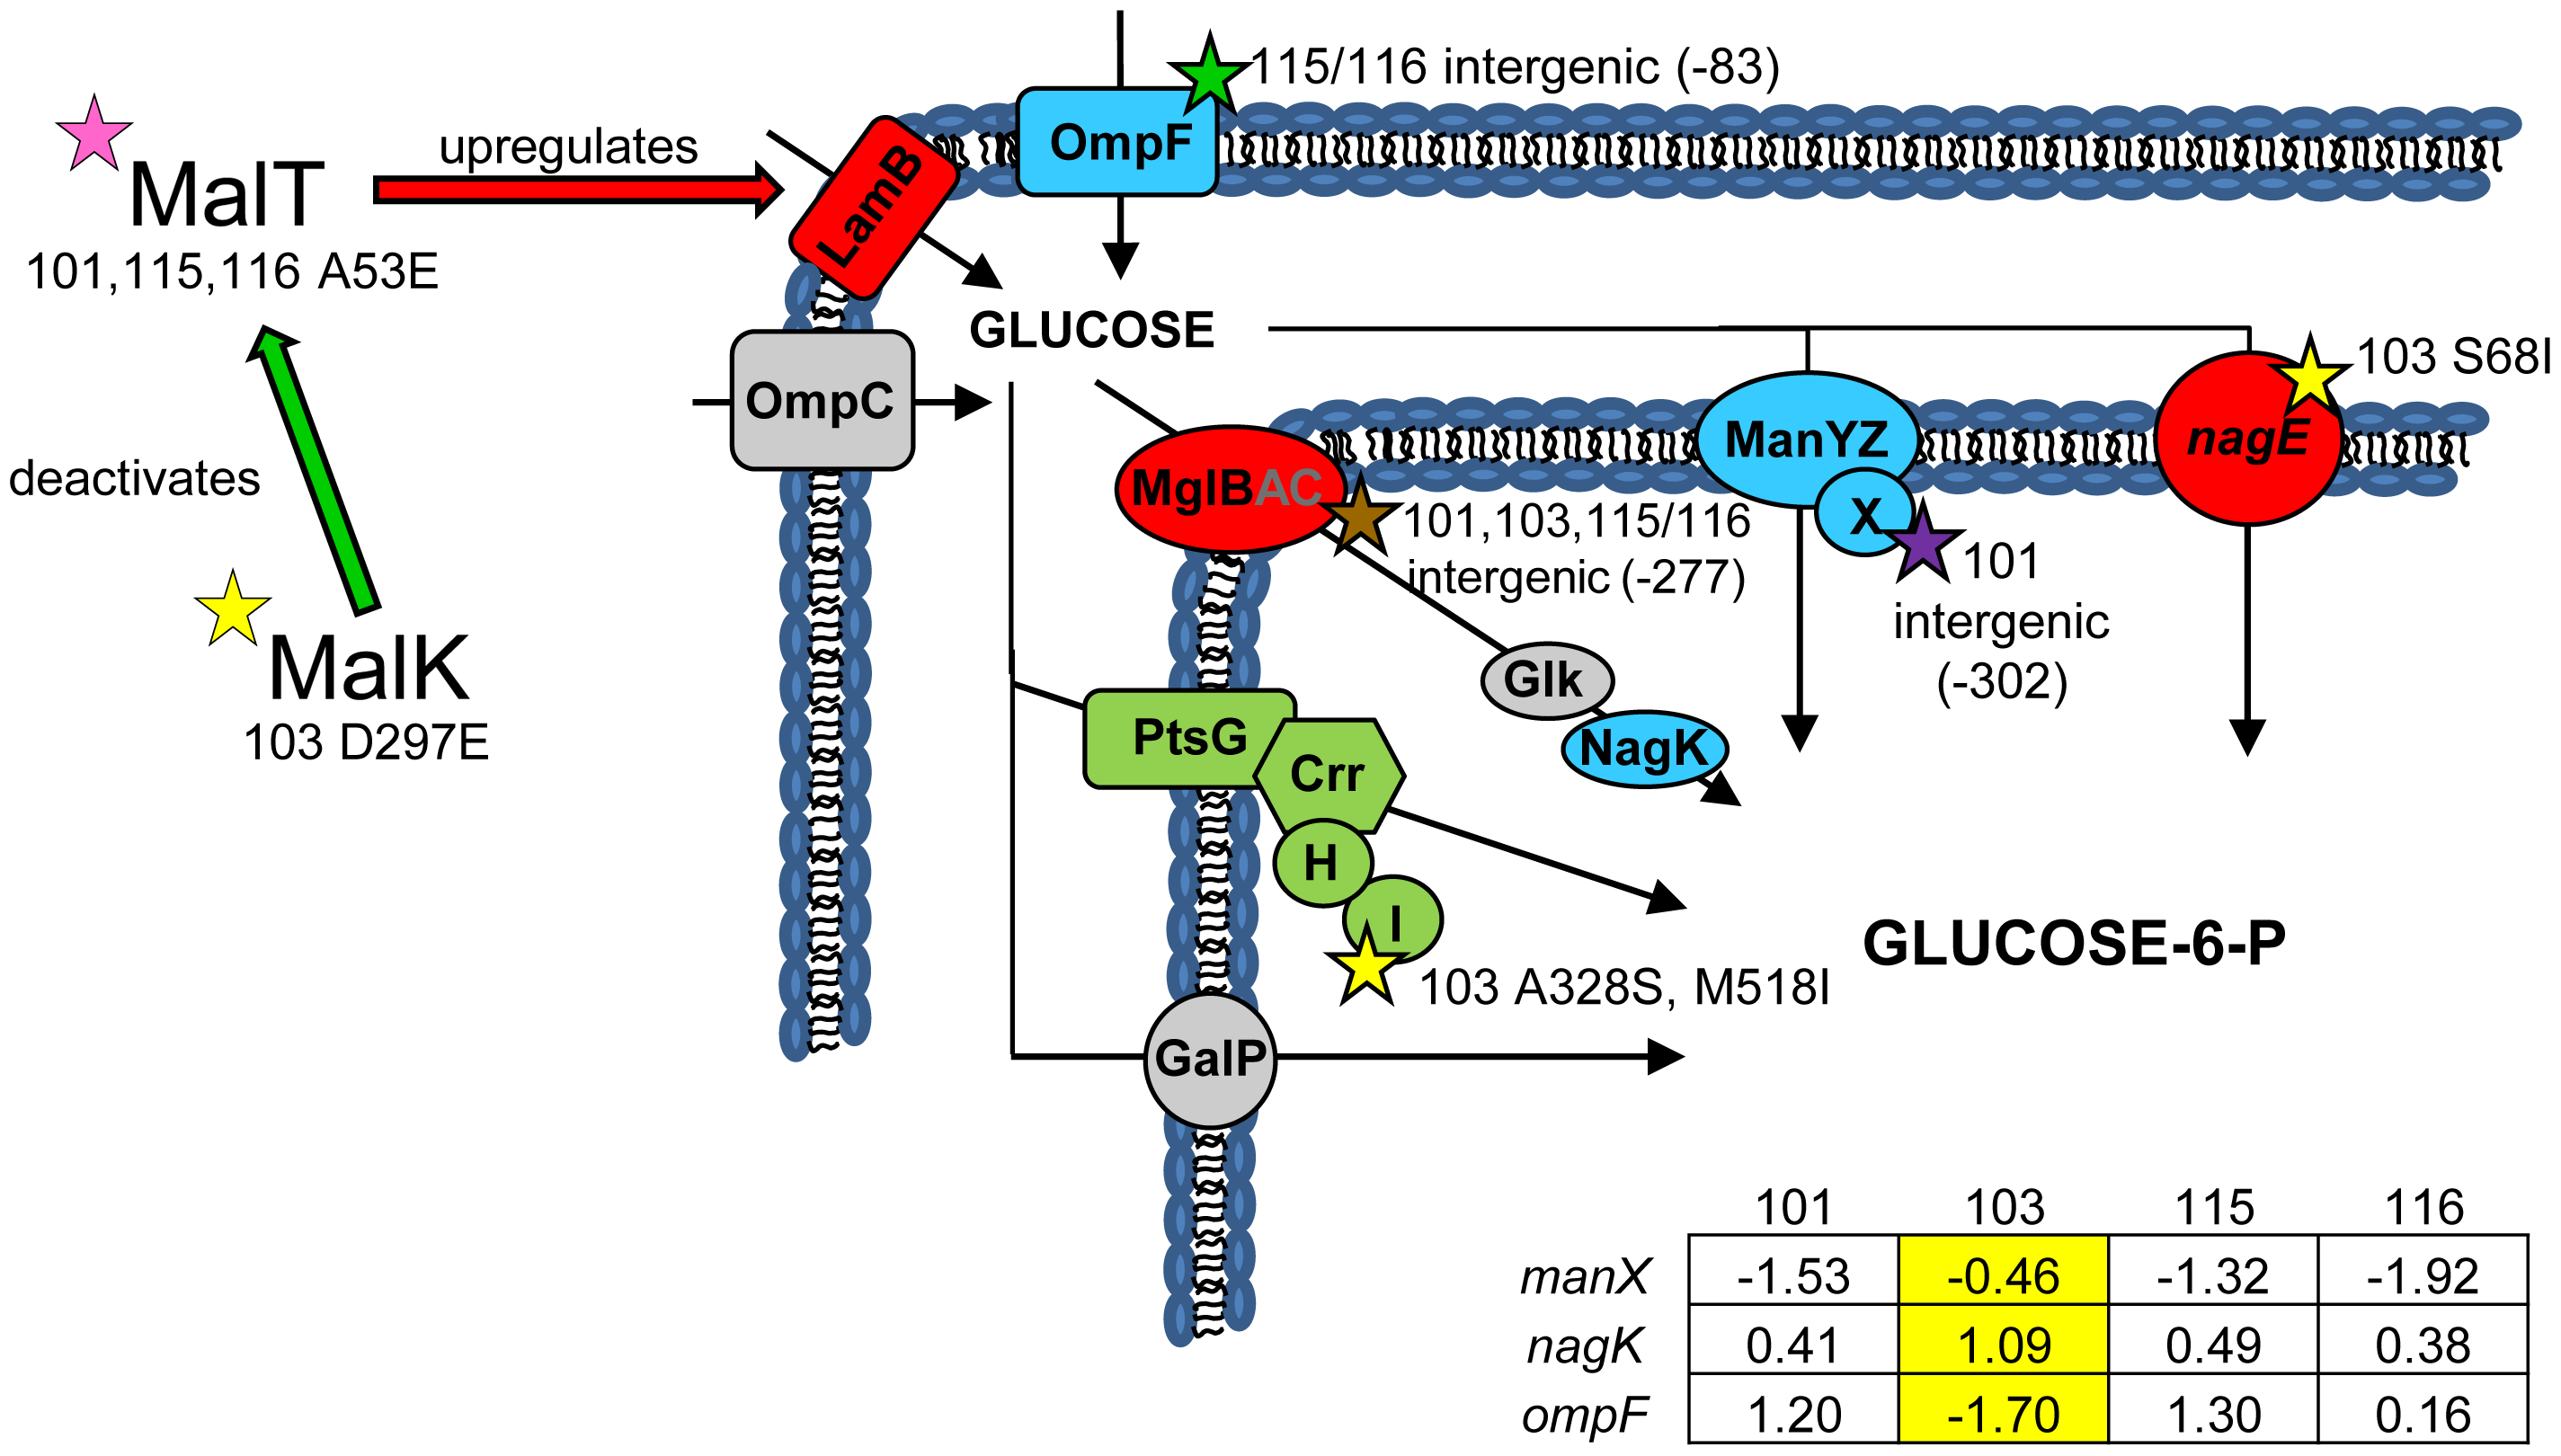 Gene expression and SNPs among loci that mediate glucose uptake.